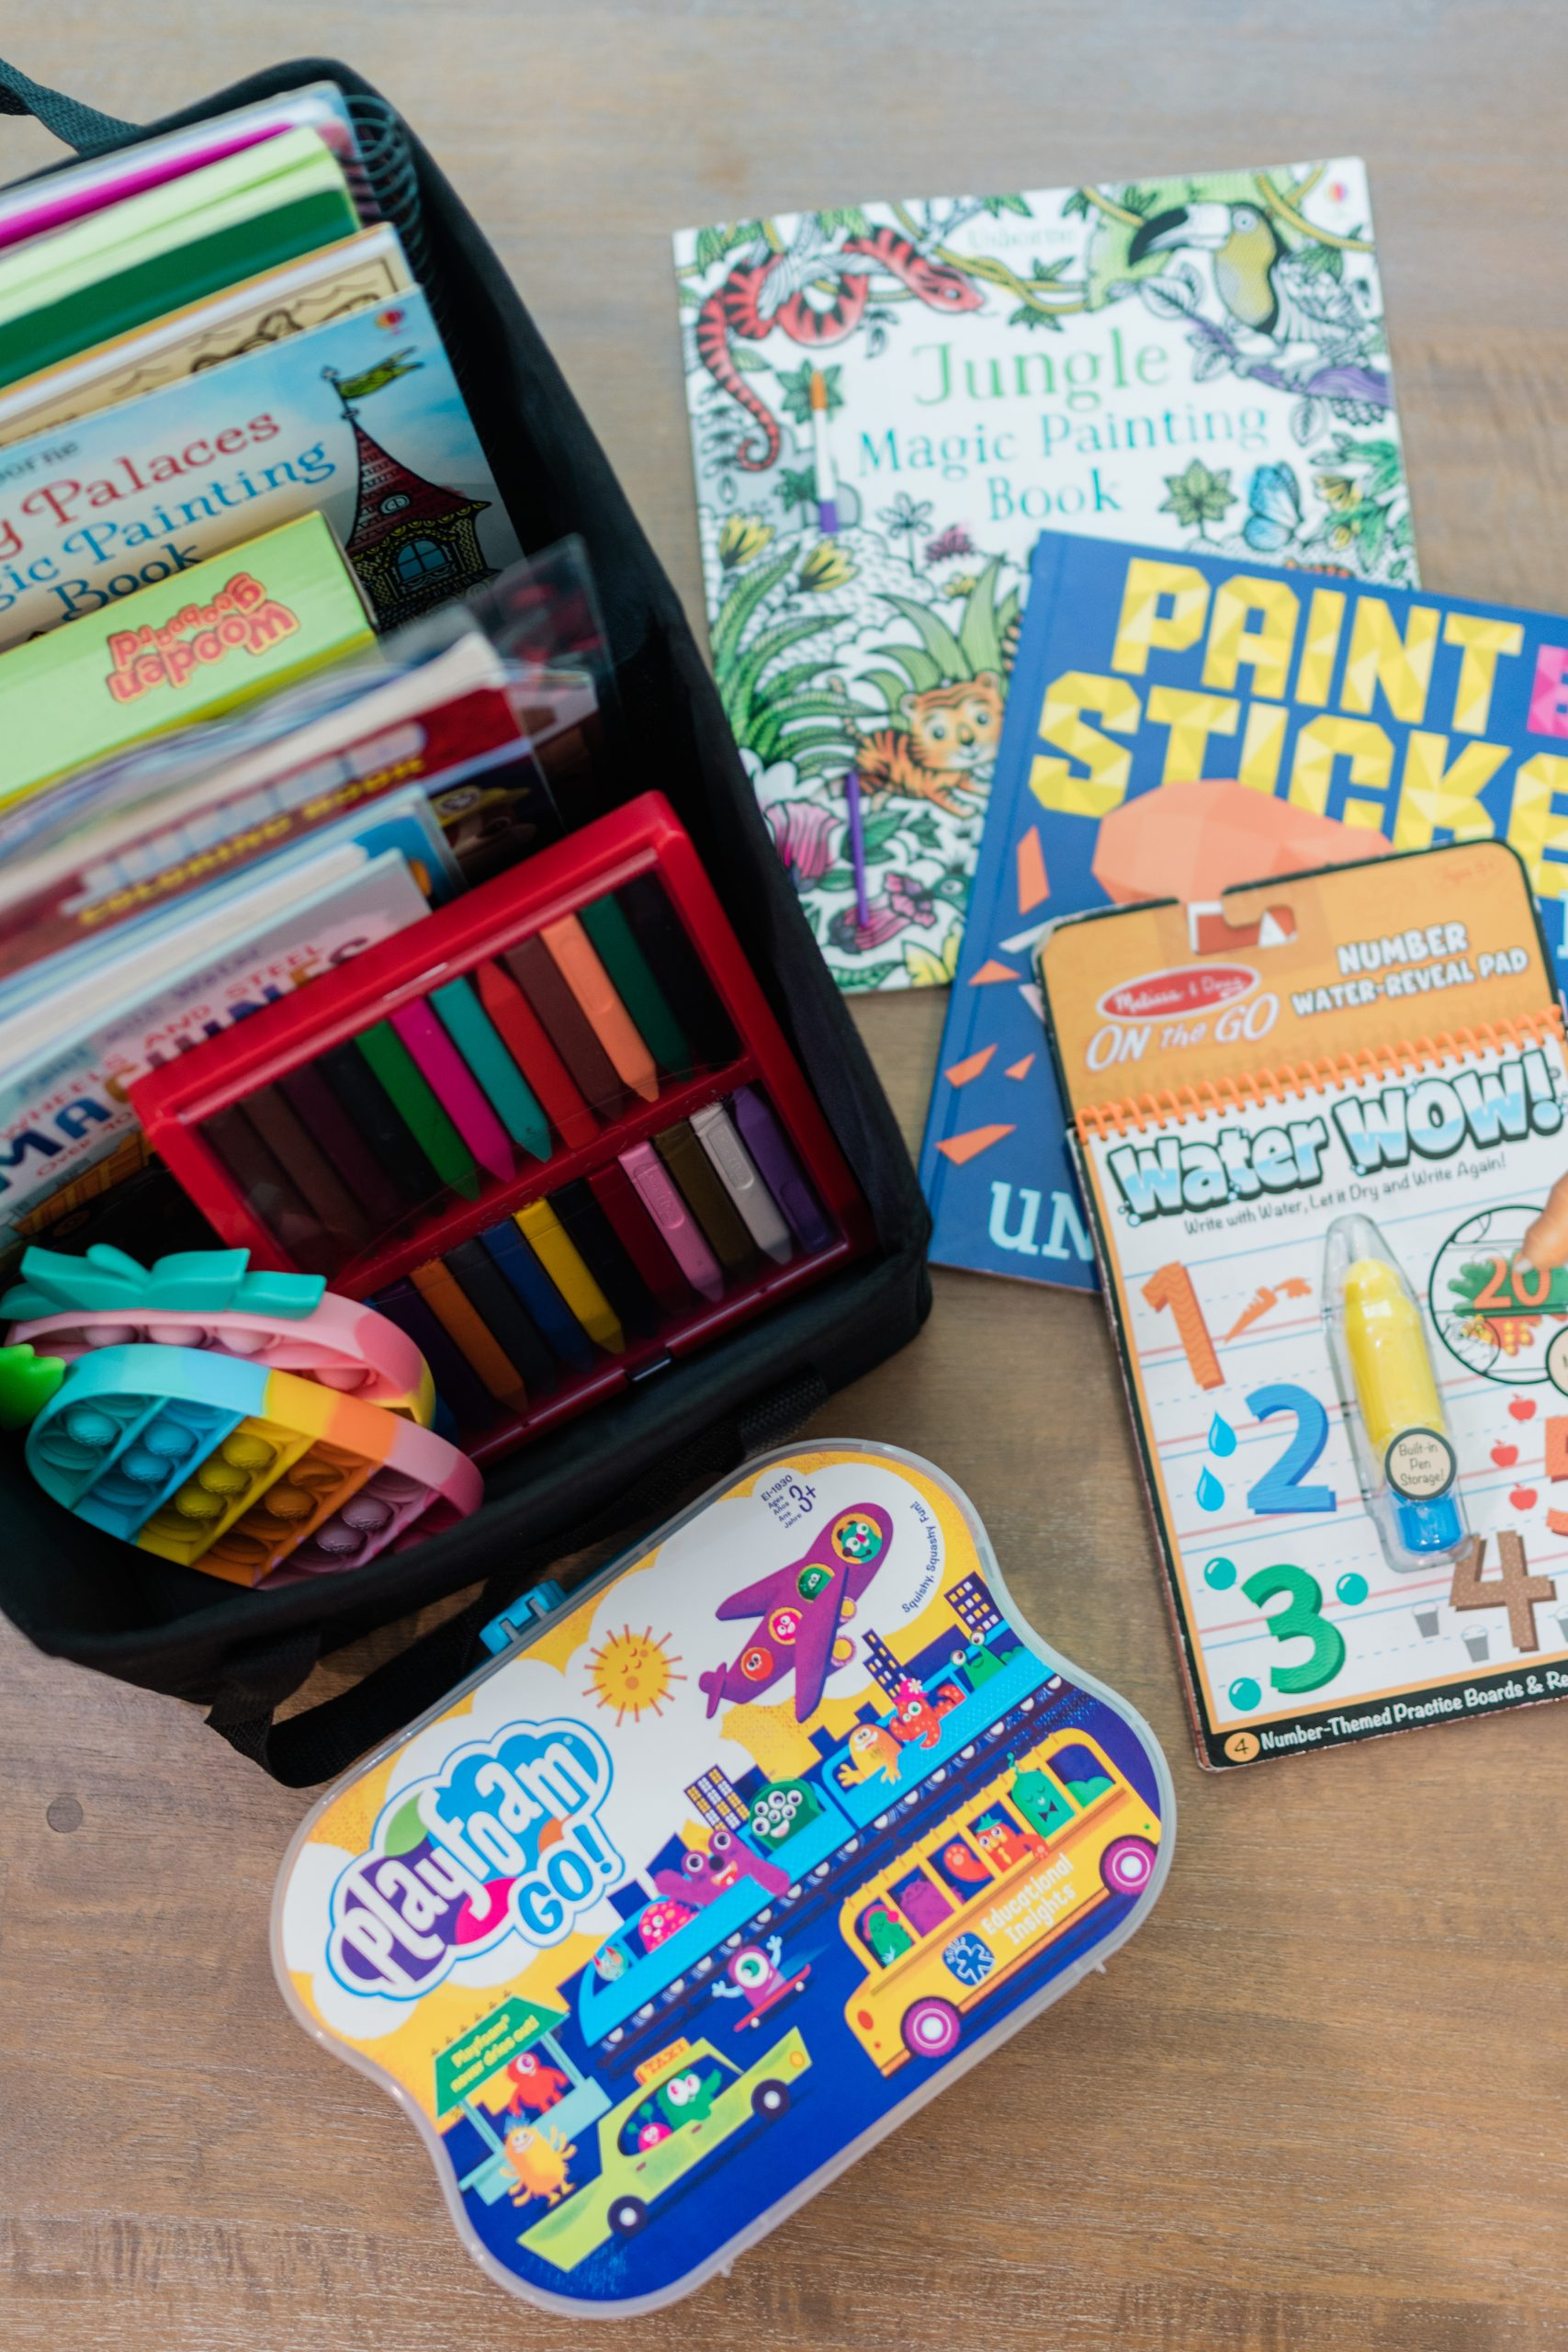 Virginia blogger, Lauren Dix, shares her backseat road trip activities kit for kids, including the perfect car organizer and activity books for the car!